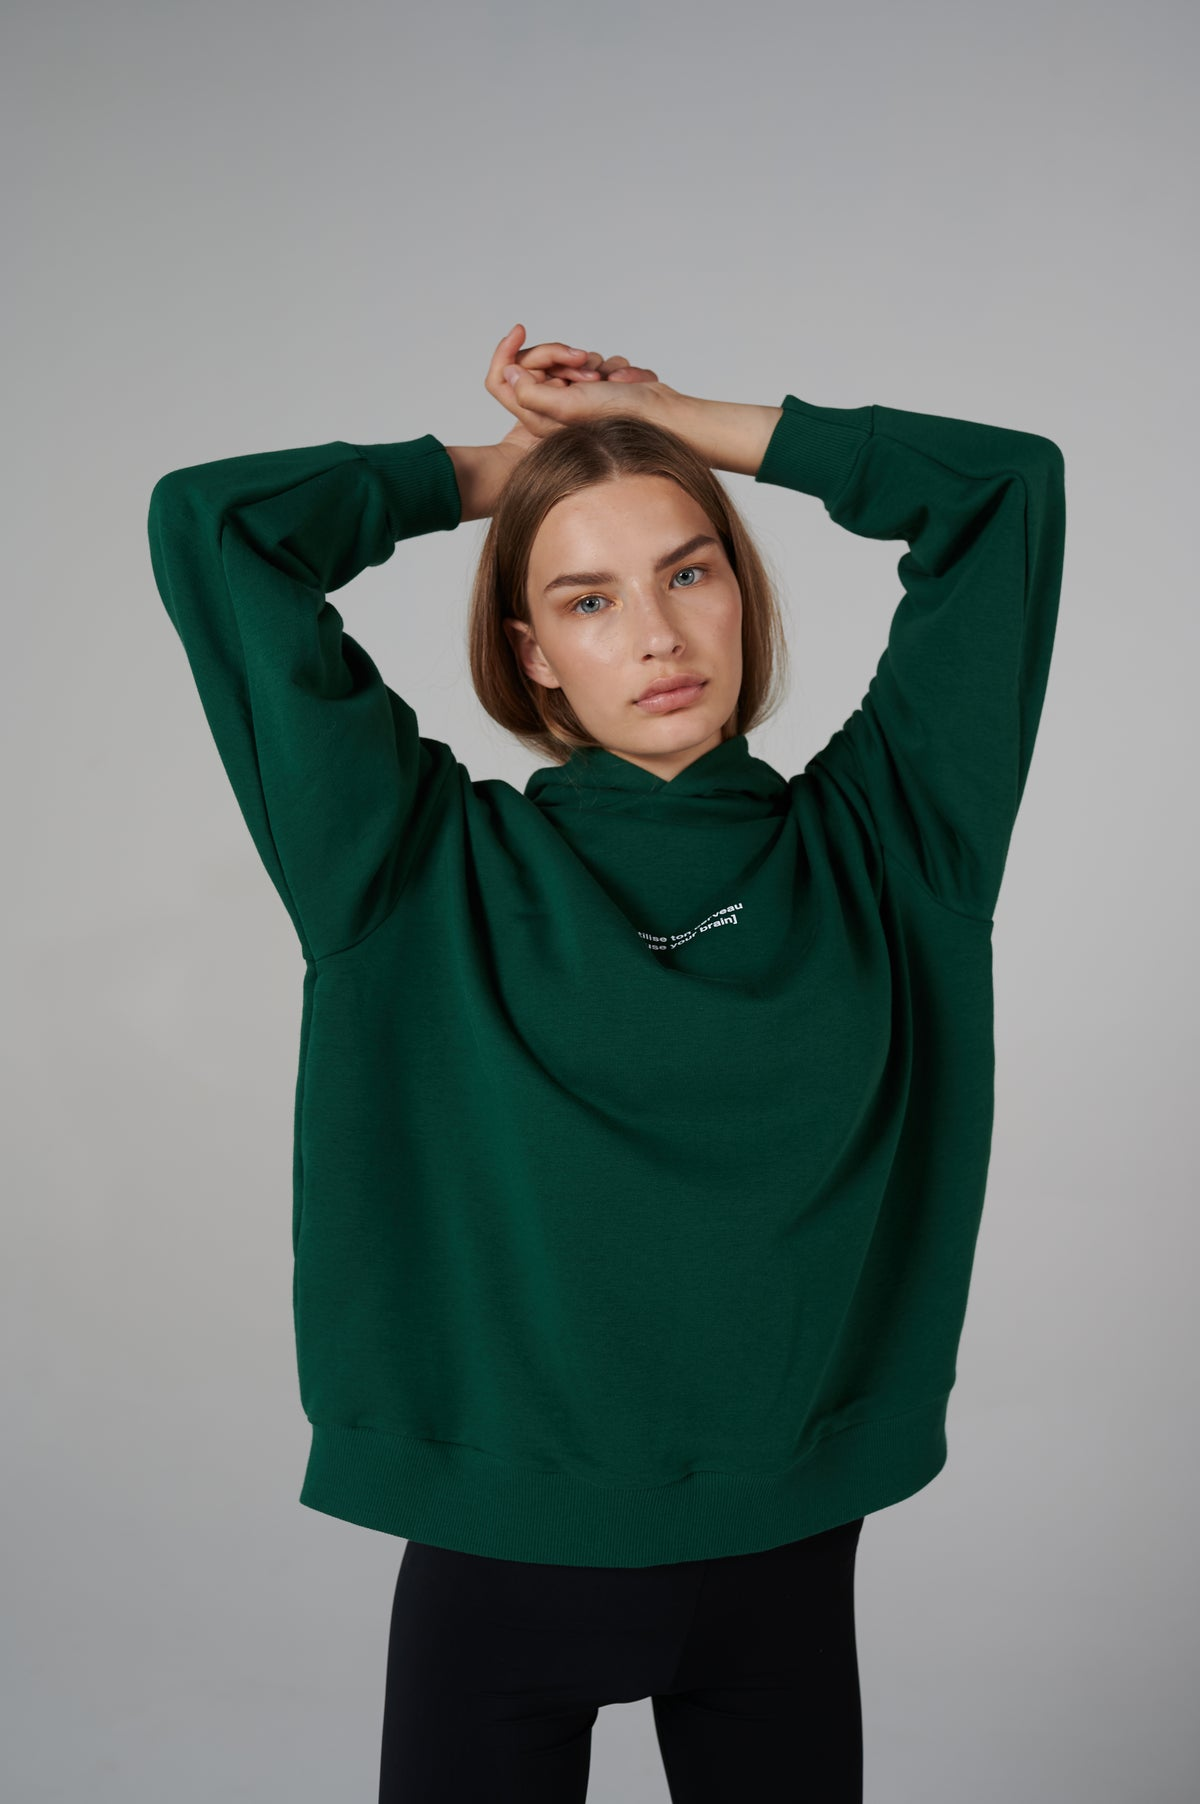 hoodie-details-french-series-forest-green-lookbook-studio-le-slap-wide-sleeves.jpg